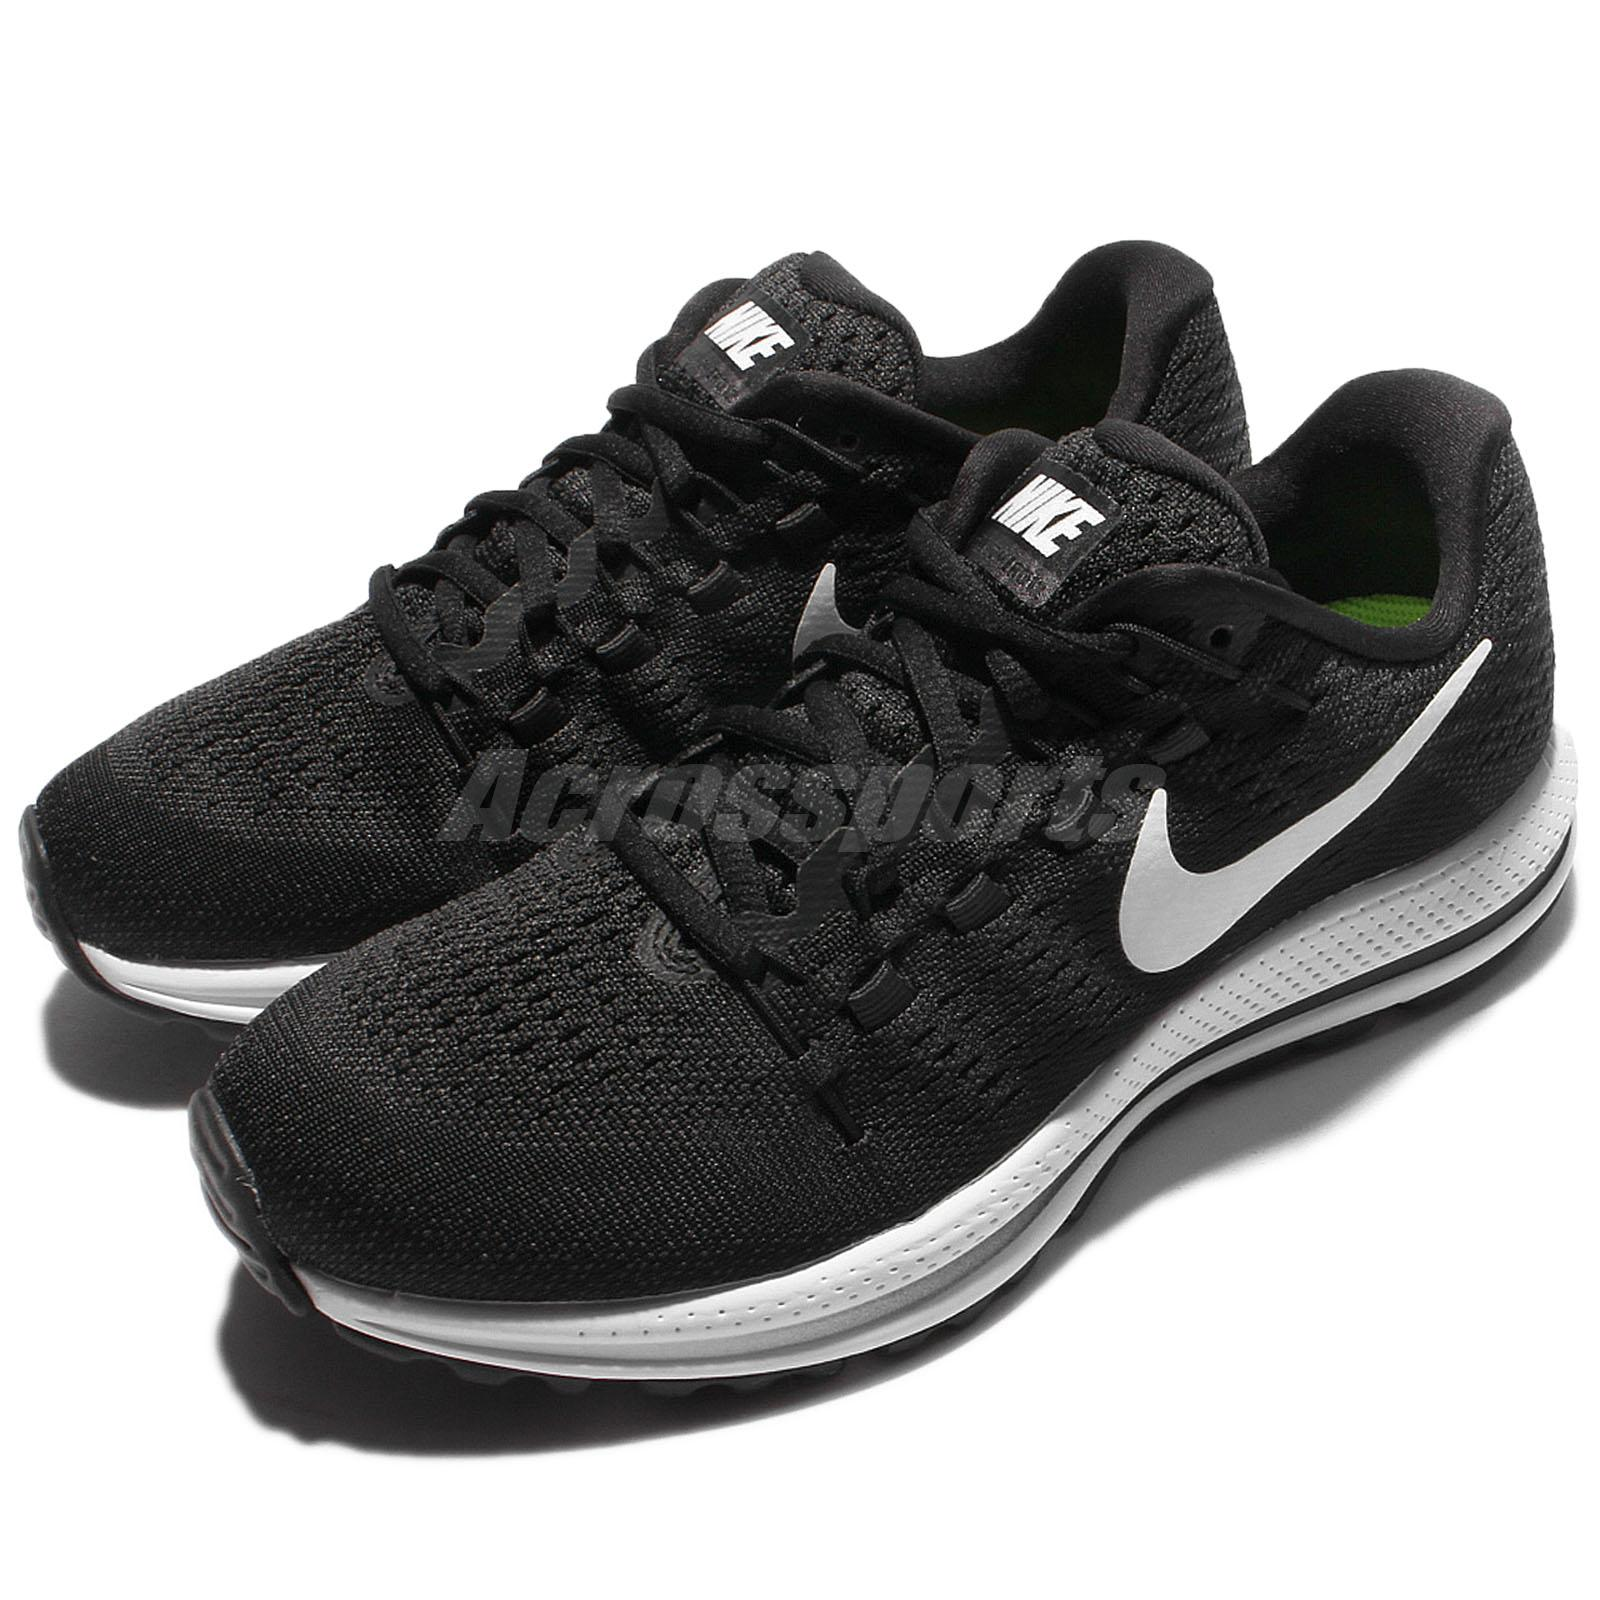 8be6c5303916 Details about Nike Wmns Air Zoom Vomero 12 Black White Women Running Shoes  Sneakers 863766-001